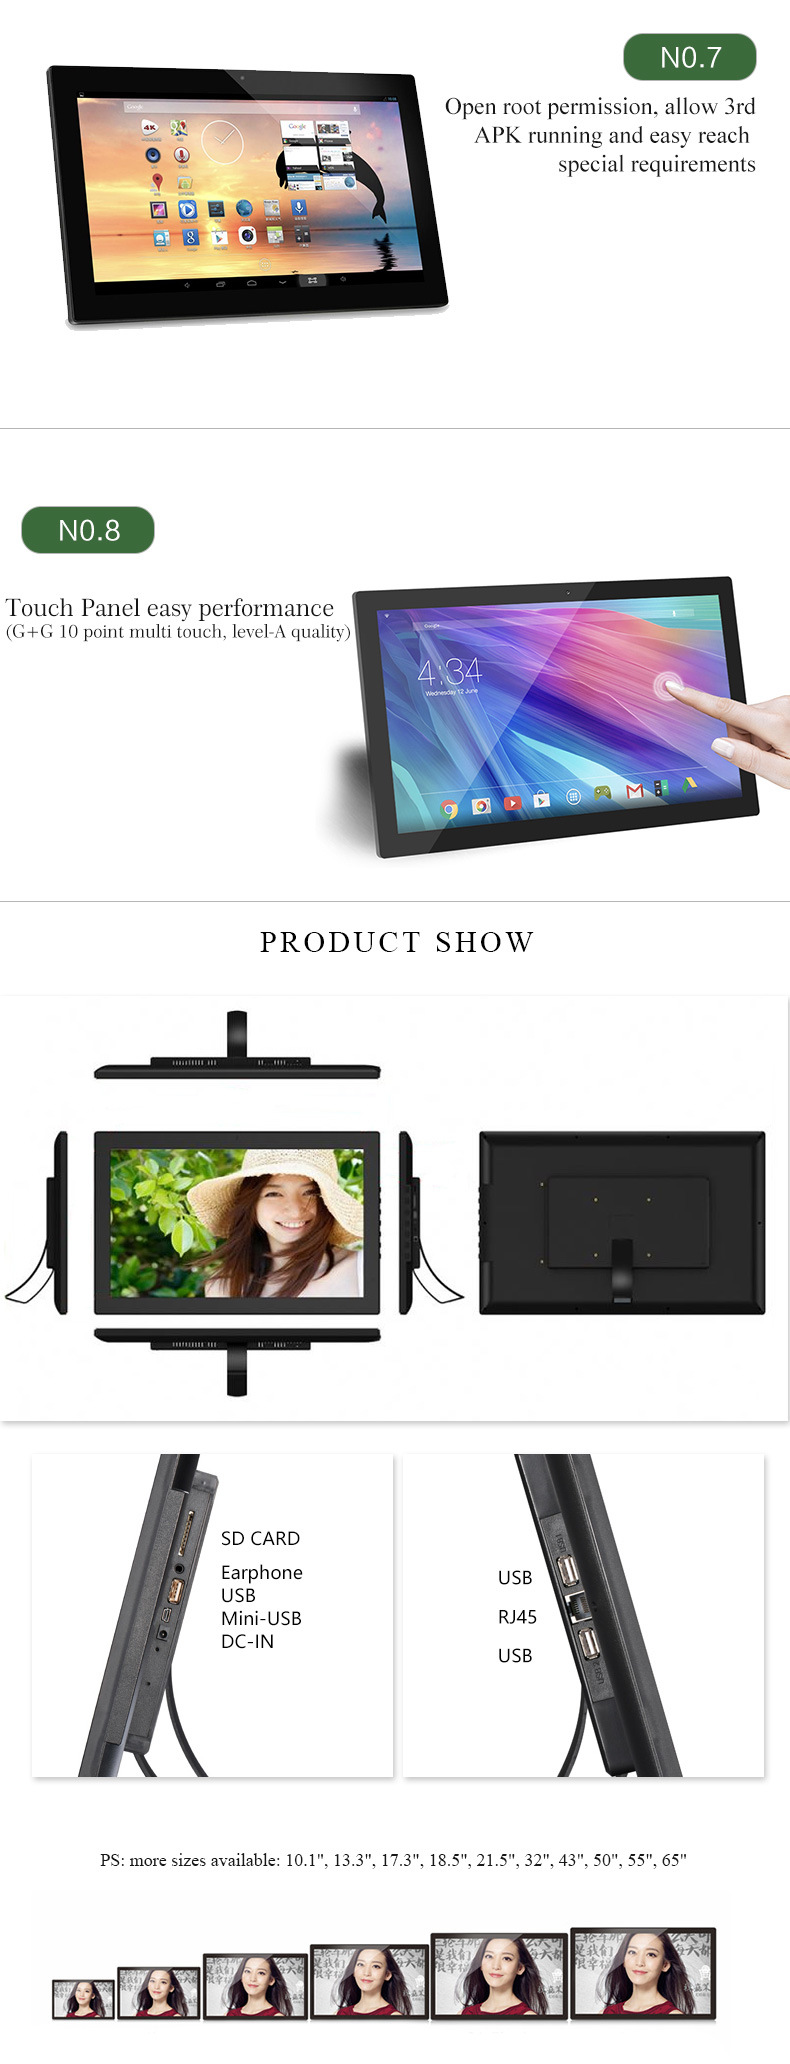 Wall Mounted Digital Kiosk 18 Inch Android Tablet with Vesa Mounting